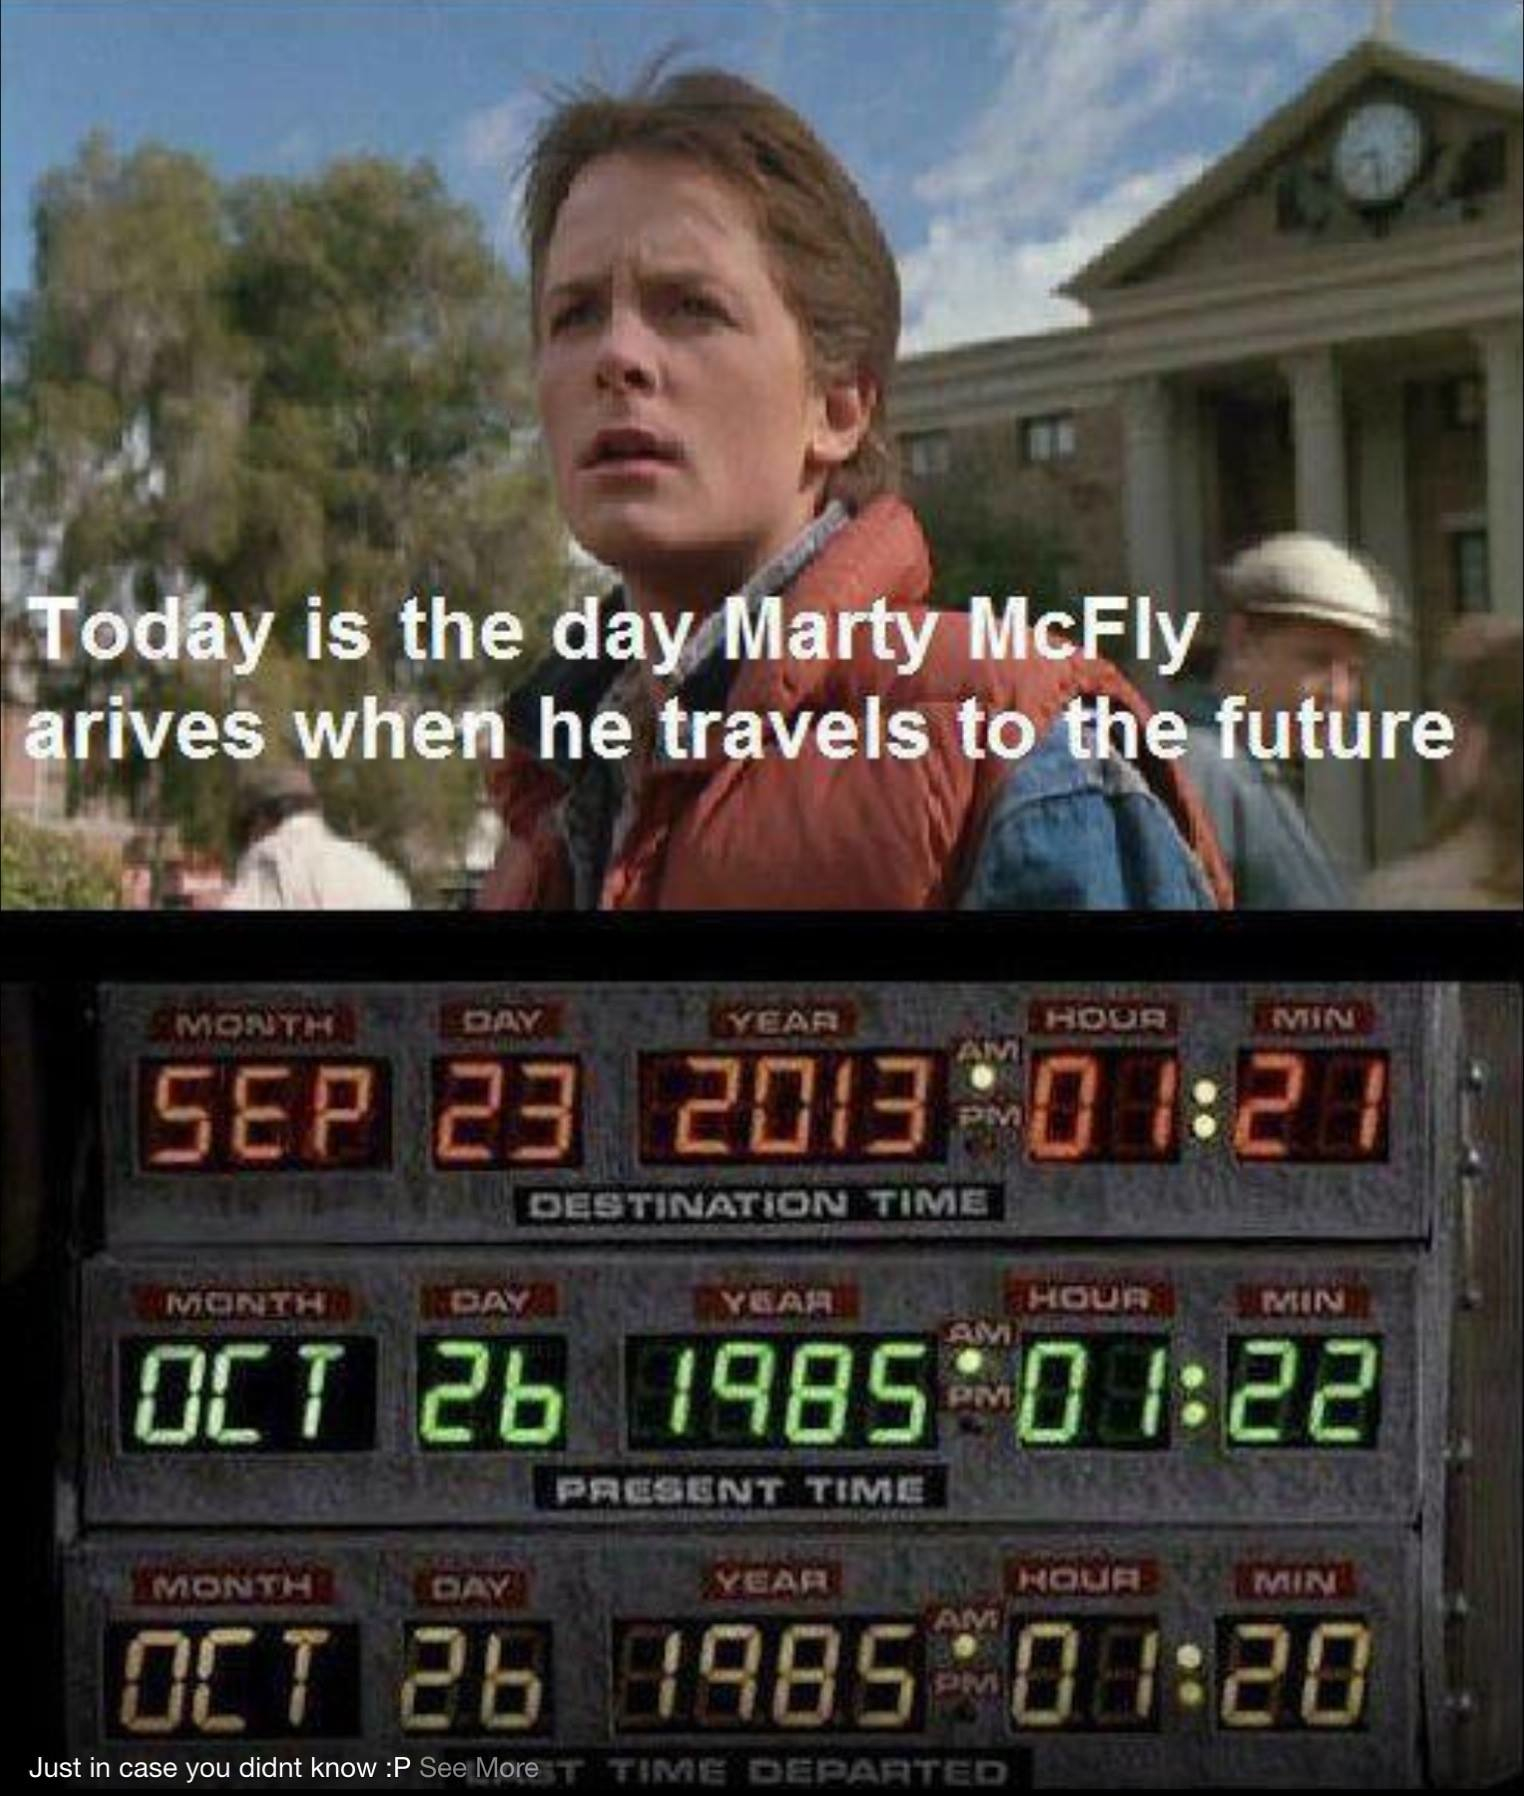 Marty mcfly future date in Sydney